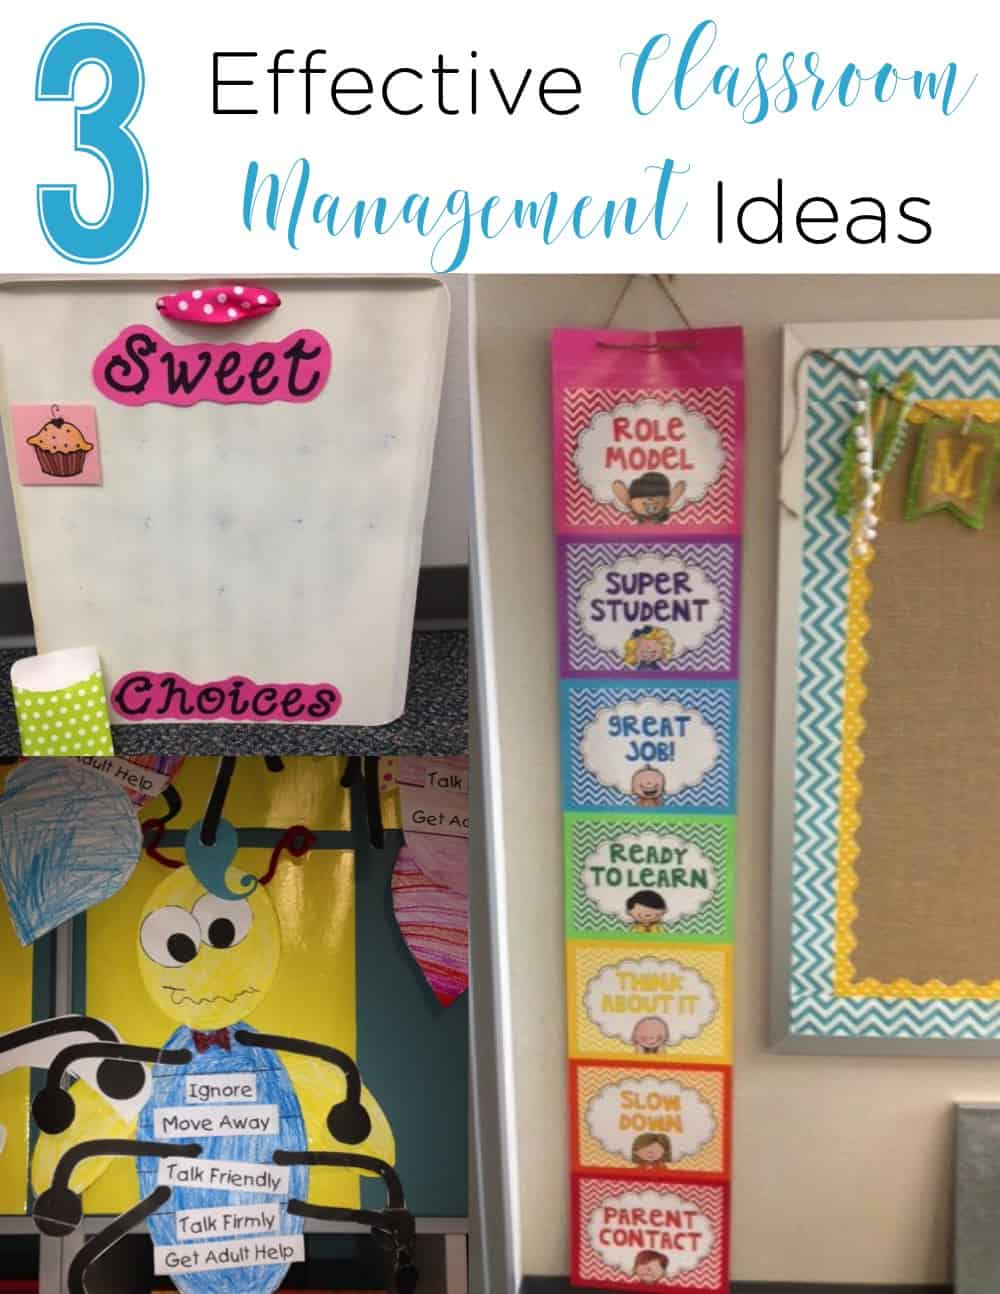 These 3 ideas are easy, effective, and help students be responsible for their choices! I love that they all focus on positive ways to handle situations and praise! #ClassroomManagement #TeacherTips